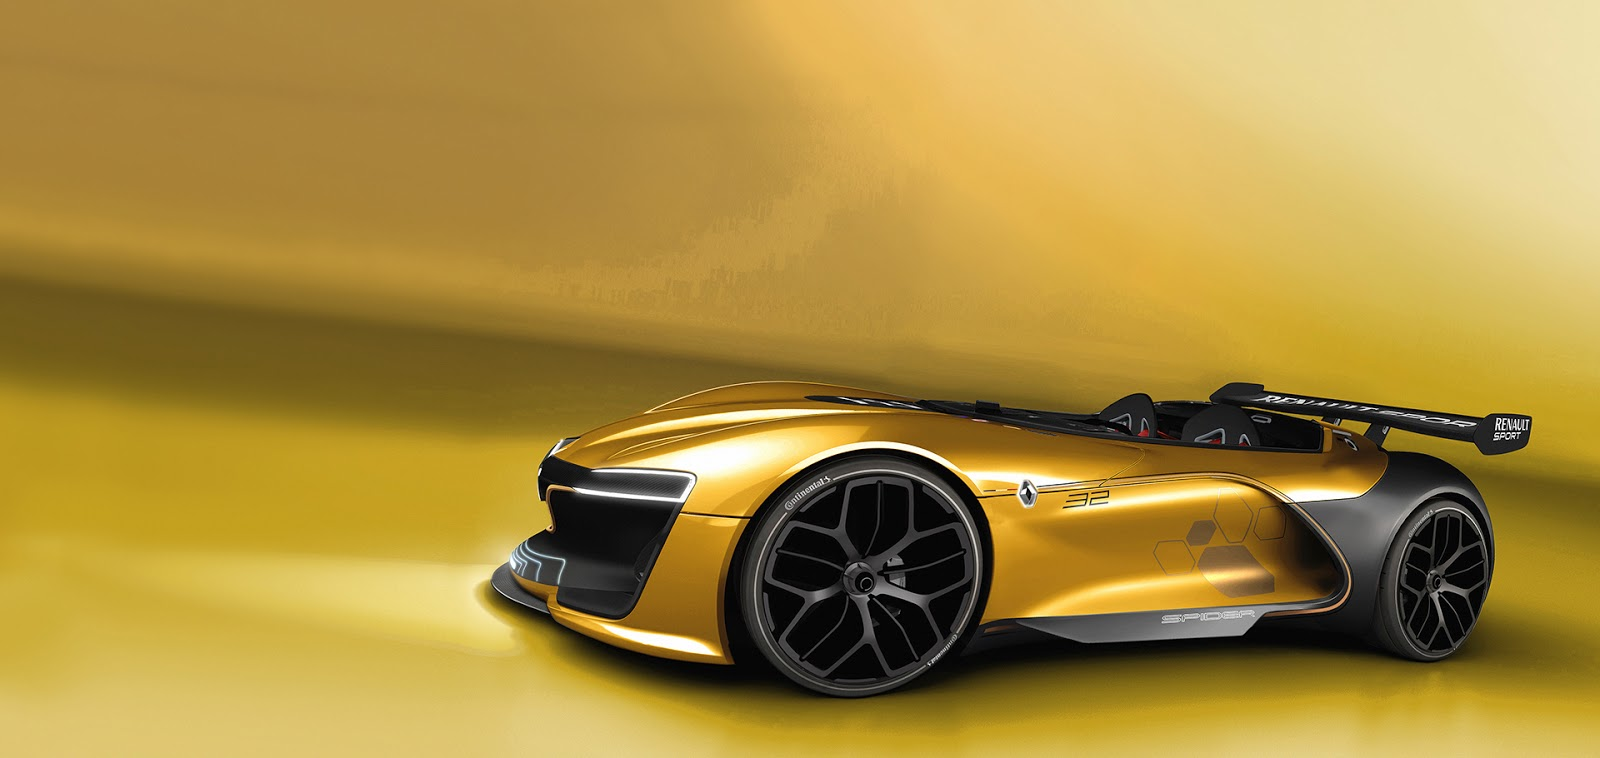 This Race Focused Renault Spider Gets Our Approval Carscoops